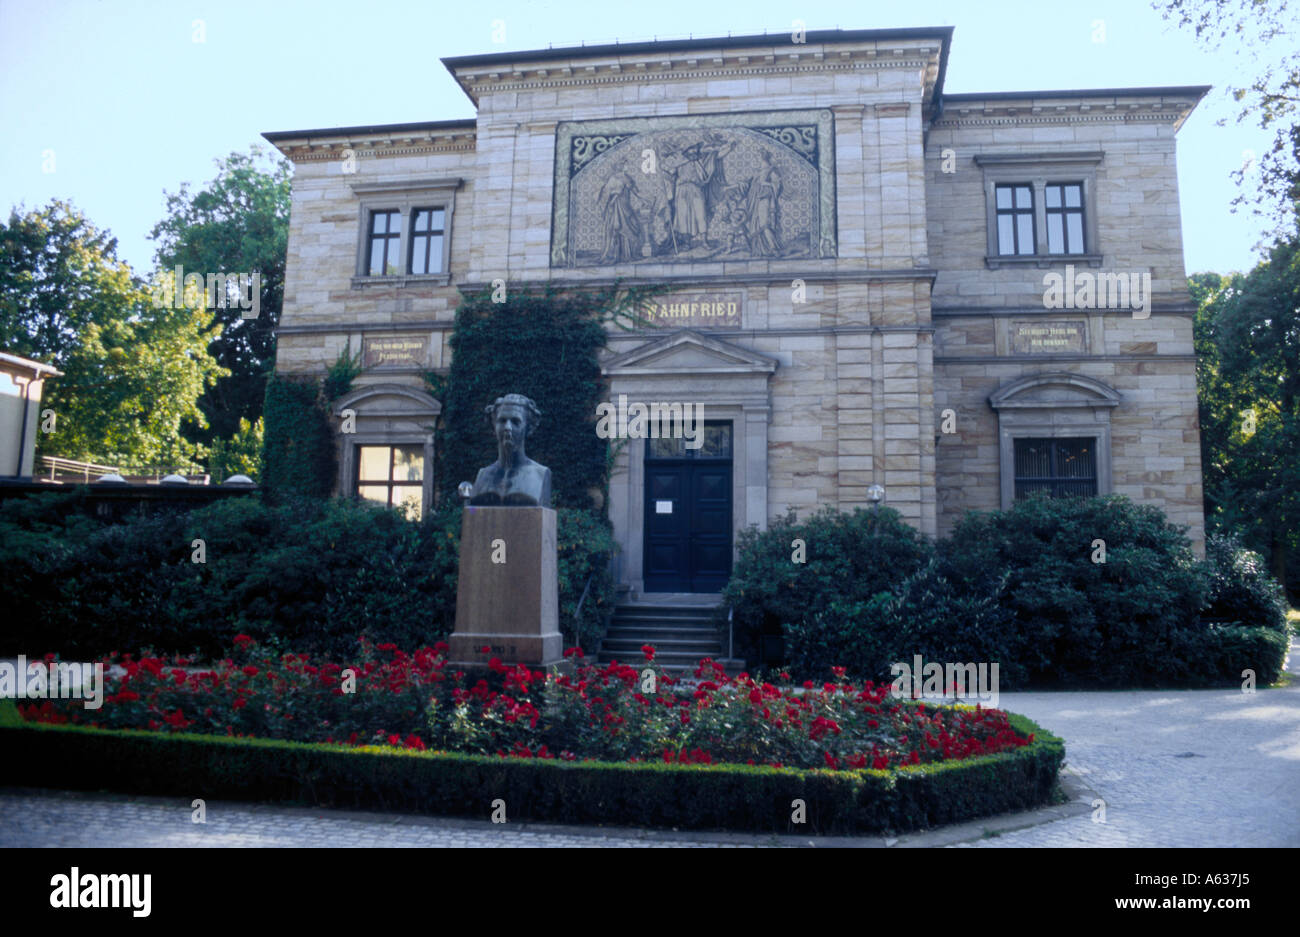 Statue of Richard Wagner in front of house, House Wahnfried, Bayreuth, Upper Franconia, Bavaria, Germany Stock Photo